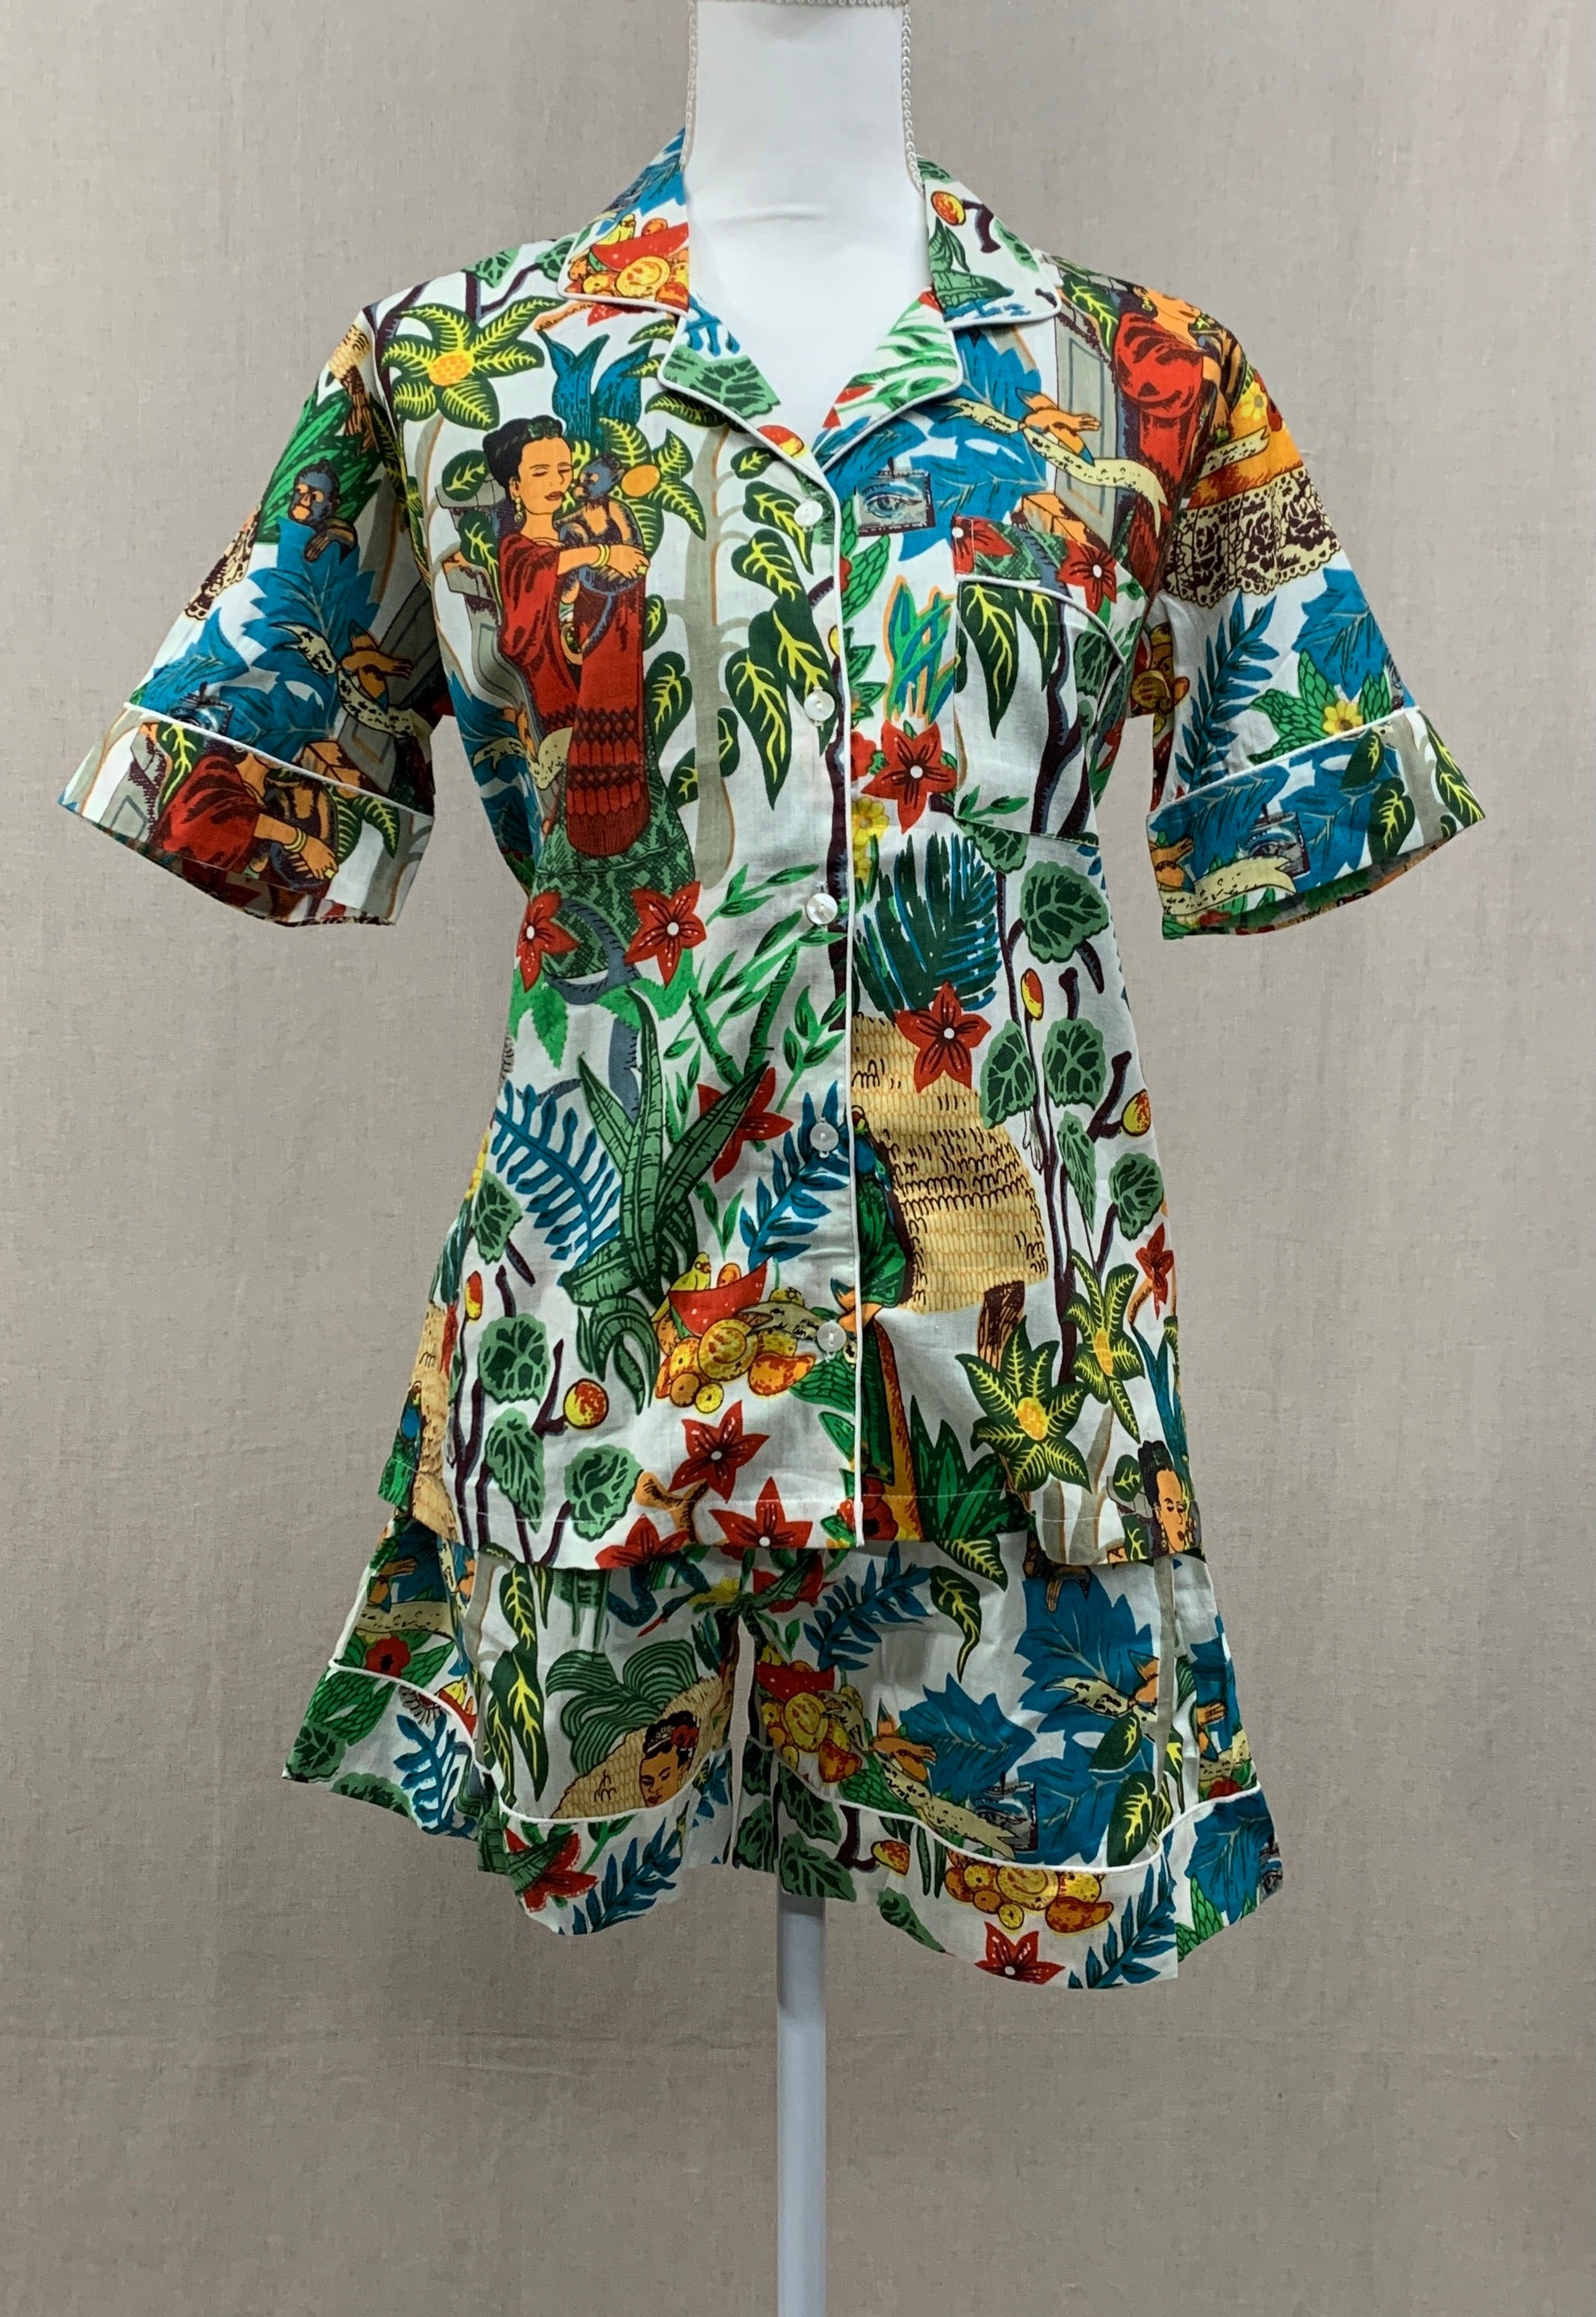 Short Sleeve Button Top w/ Shorts - Frida Kahlo